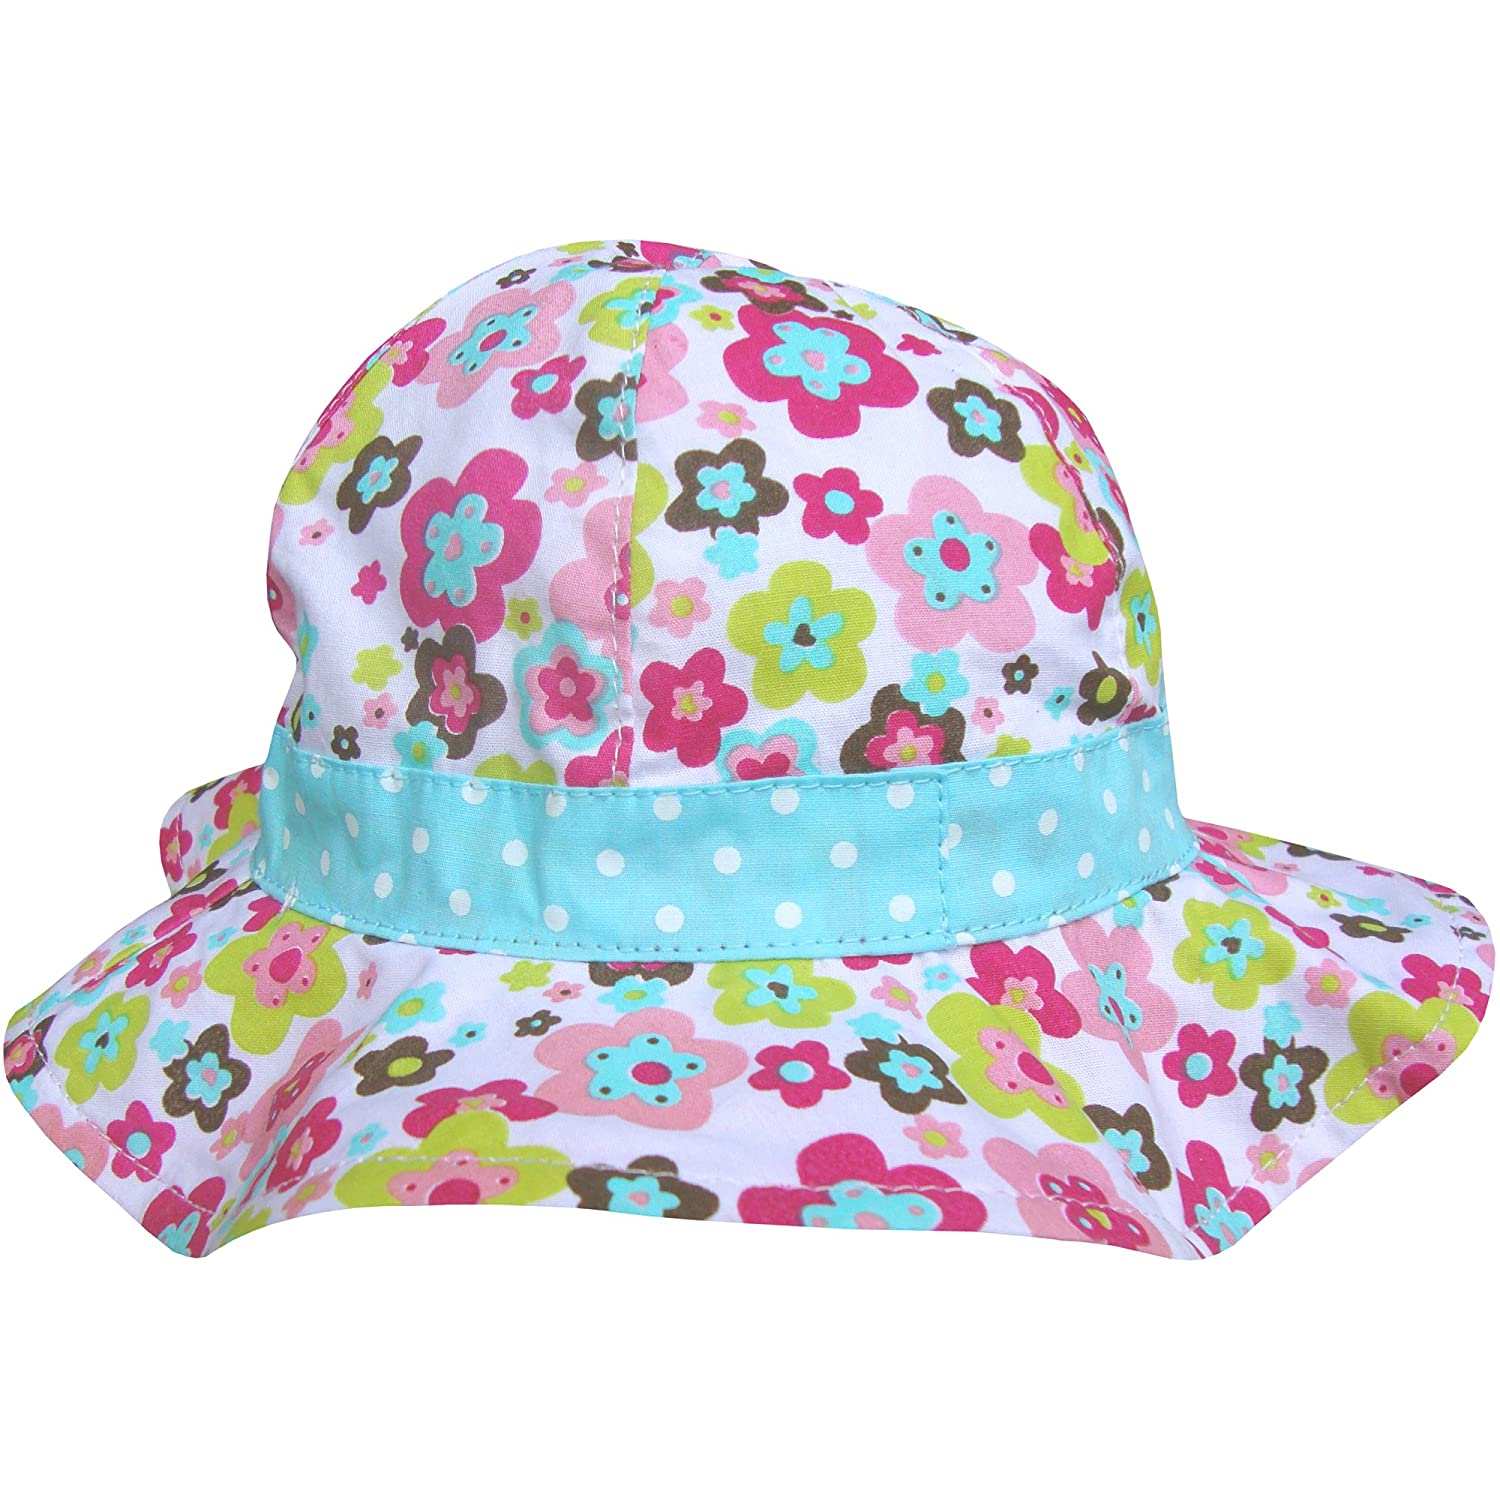 Best Baby Girl Sun Hats With Chin Strap - List and Reviews ...